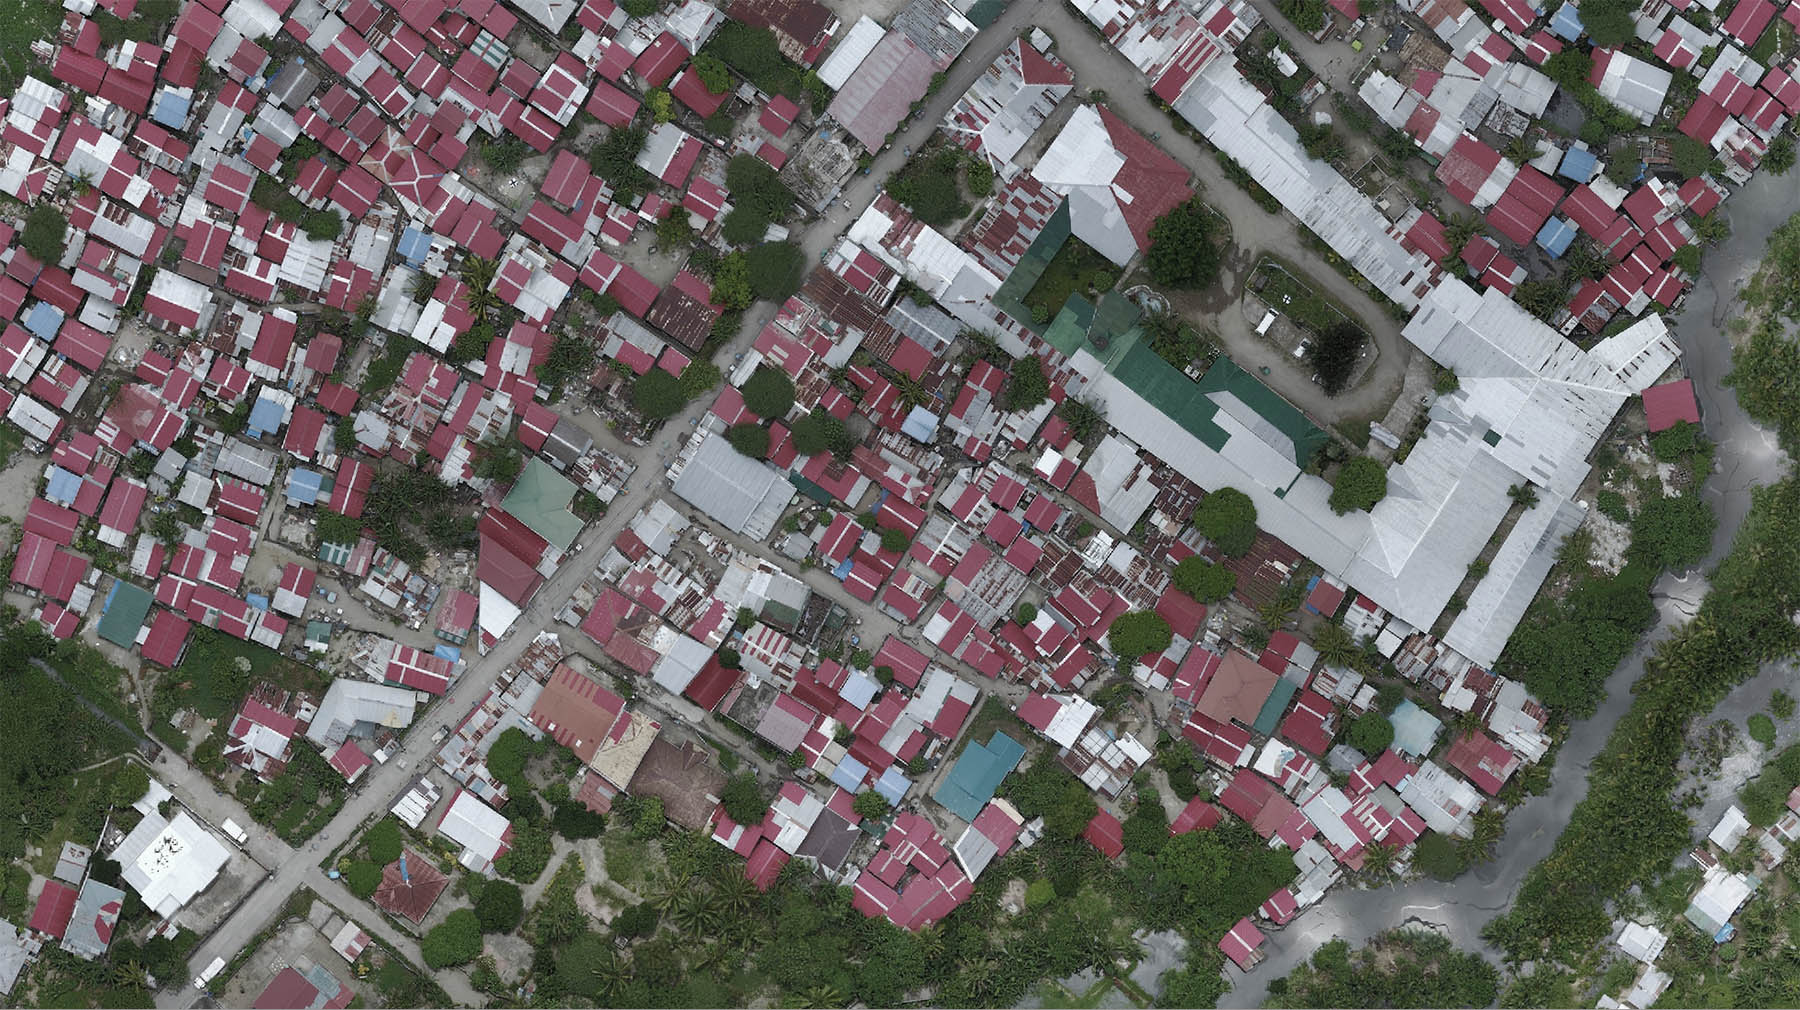 Detailed drone and street-level imagery for mapping in the Philippines